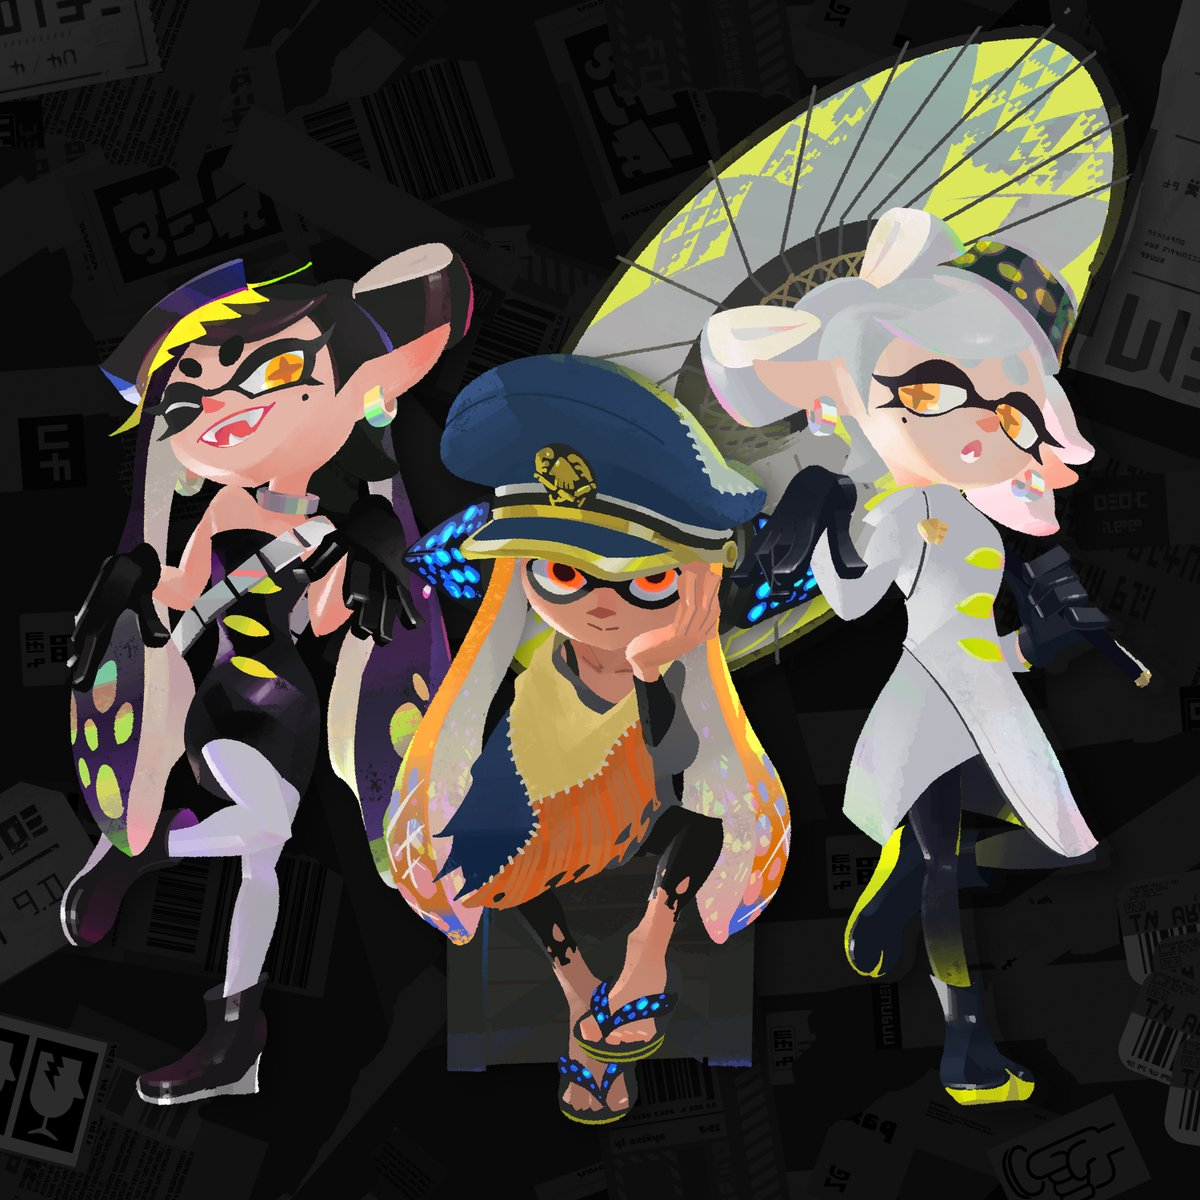 This is the New Squidbeak Splatoon who work together undercover to defeat the evil Octarian Army. On the left is Agent 1, on the right is Agent 2, and in the middle is their captain. Their true identities are a secret, and they'll do whatever it takes to support the new Agent 3. https://t.co/C5BucVmq8u